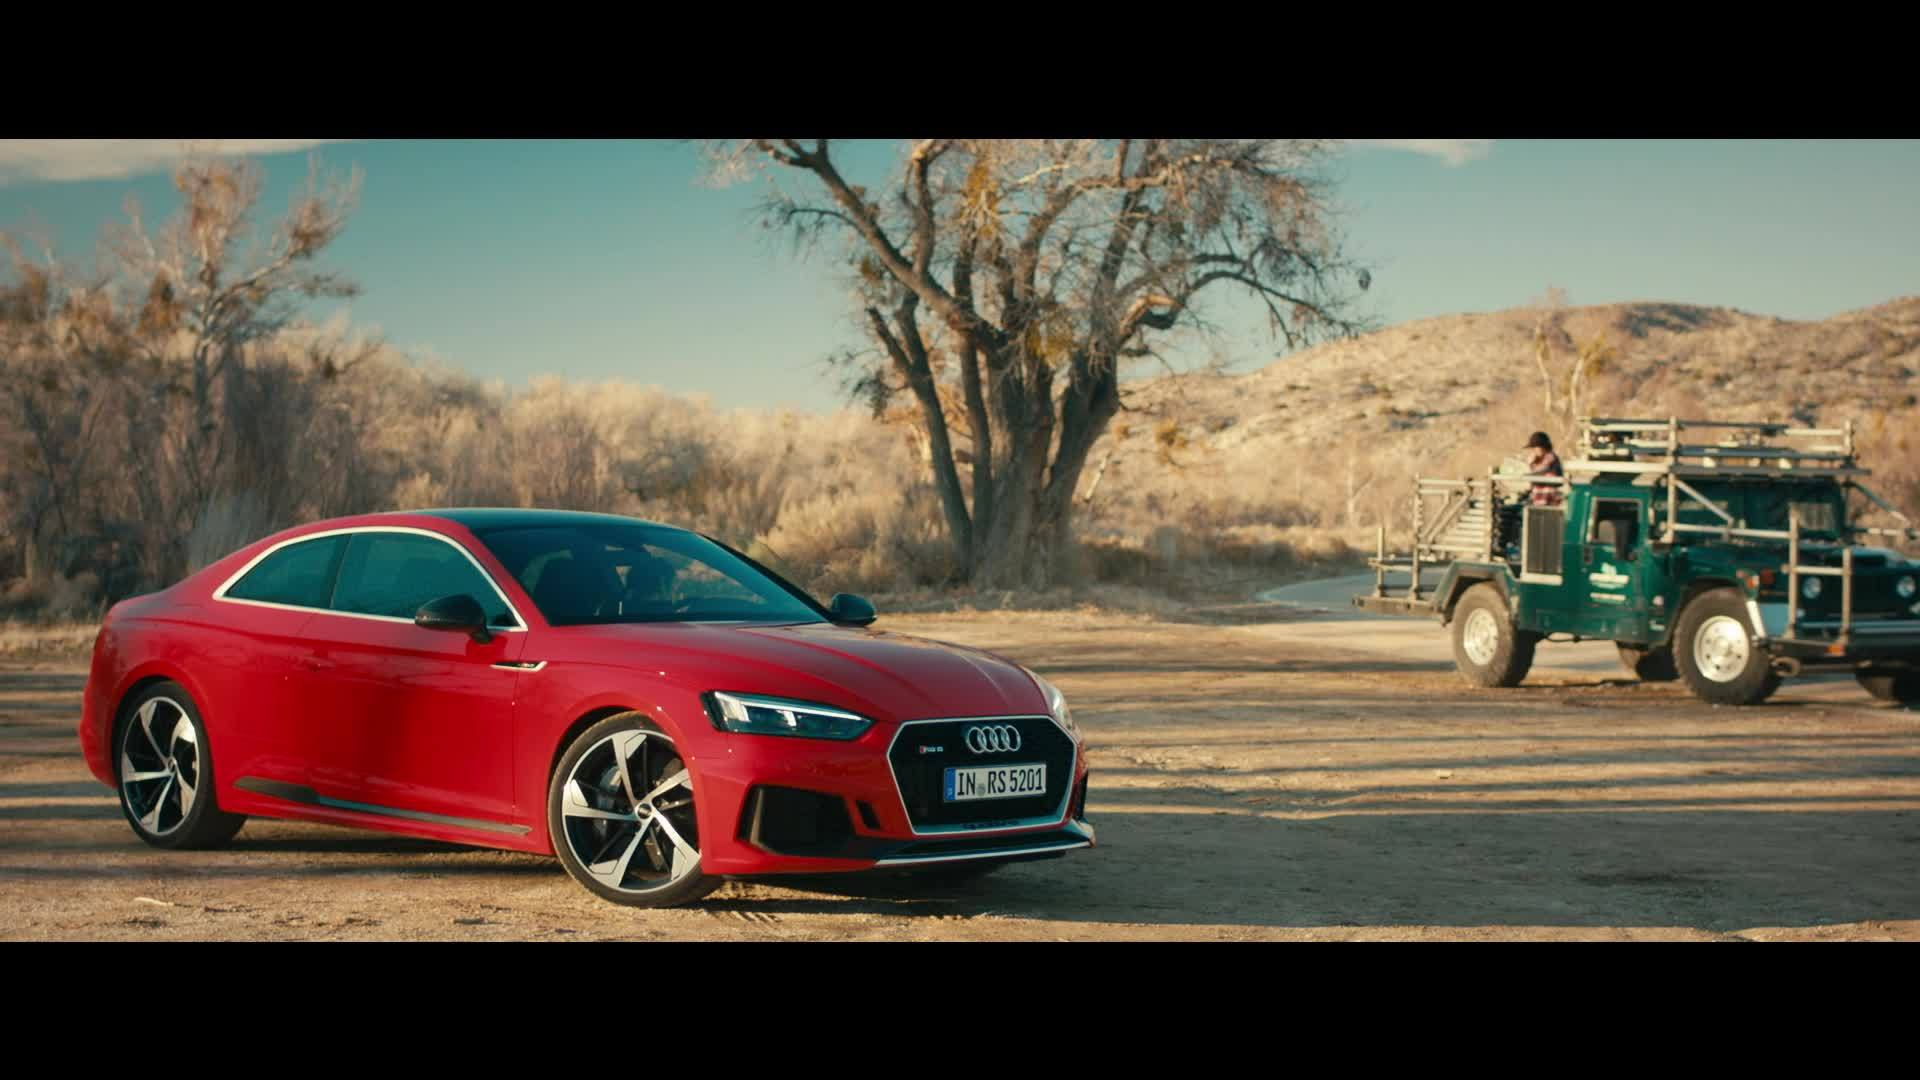 RS 5 Coupé - The High-Performance Gran Turismo